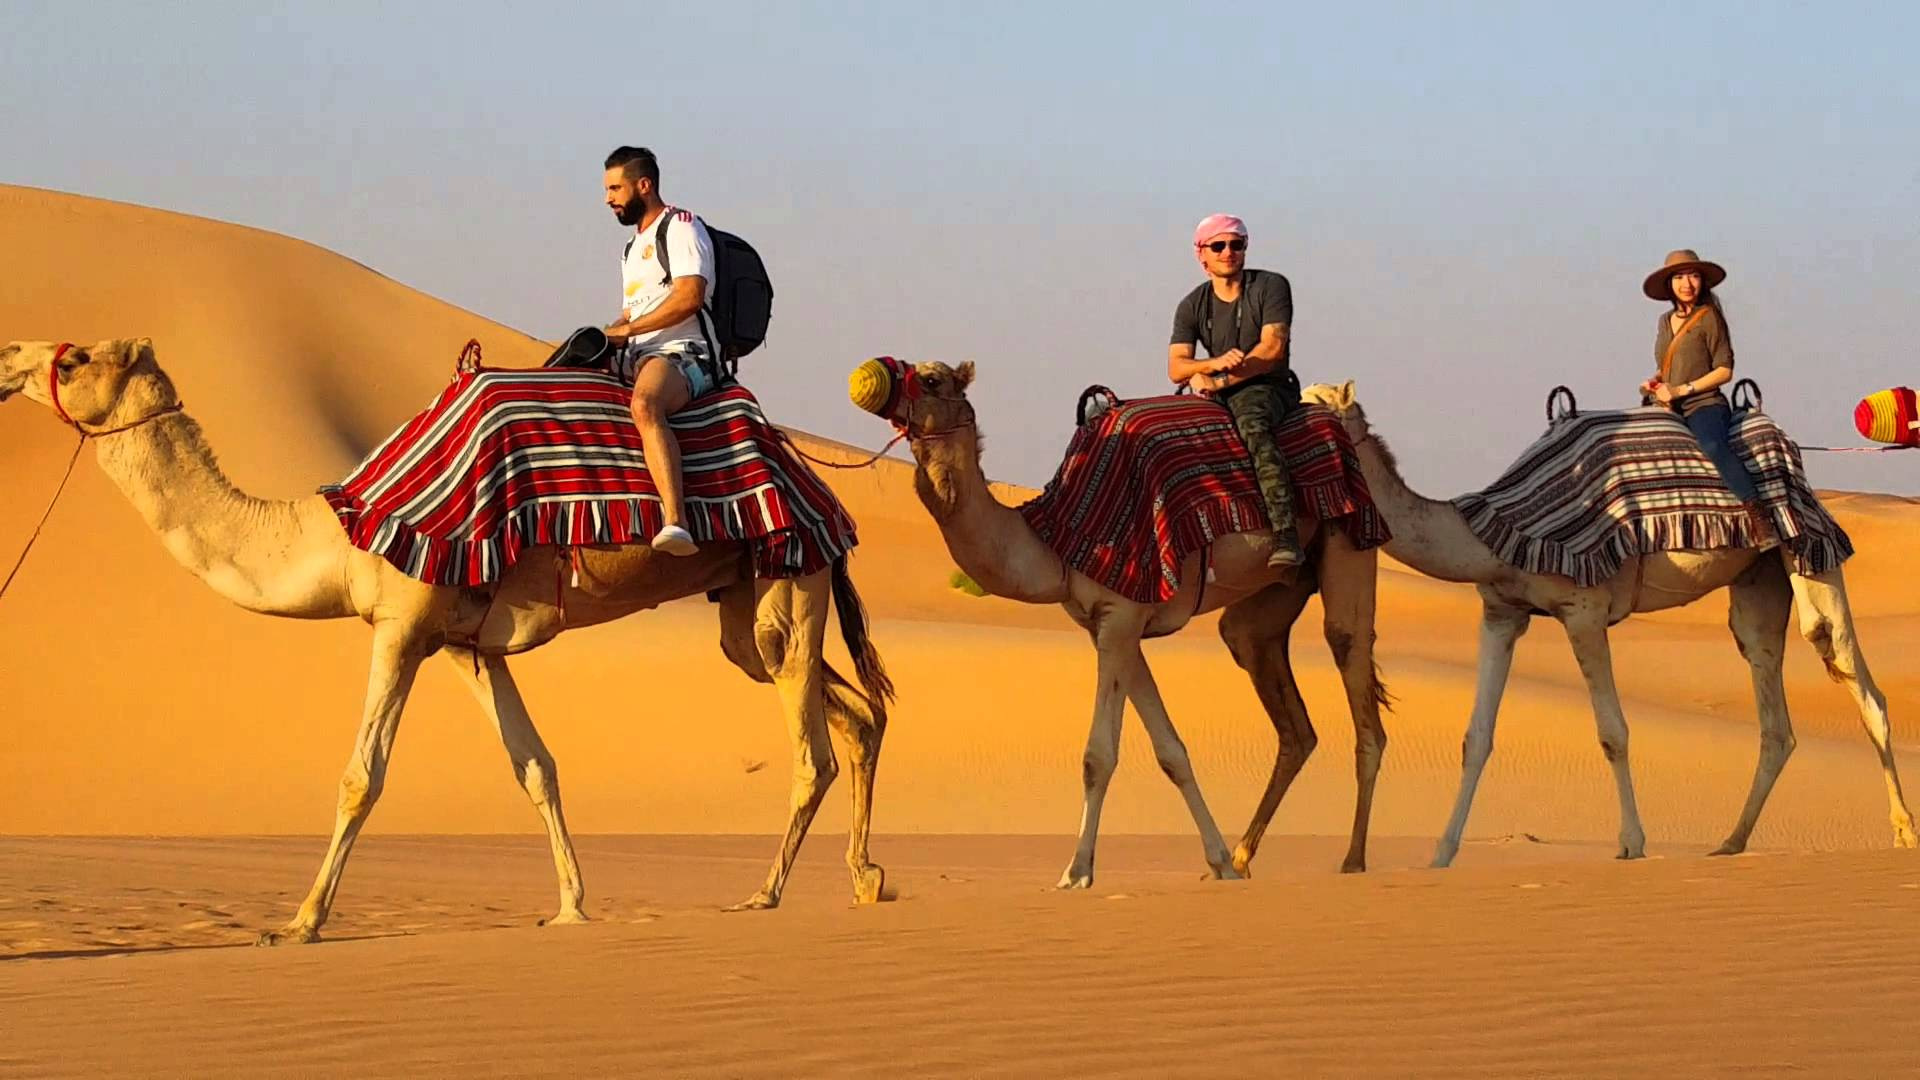 camel ride activities besides exploring the splendid forts and palaces